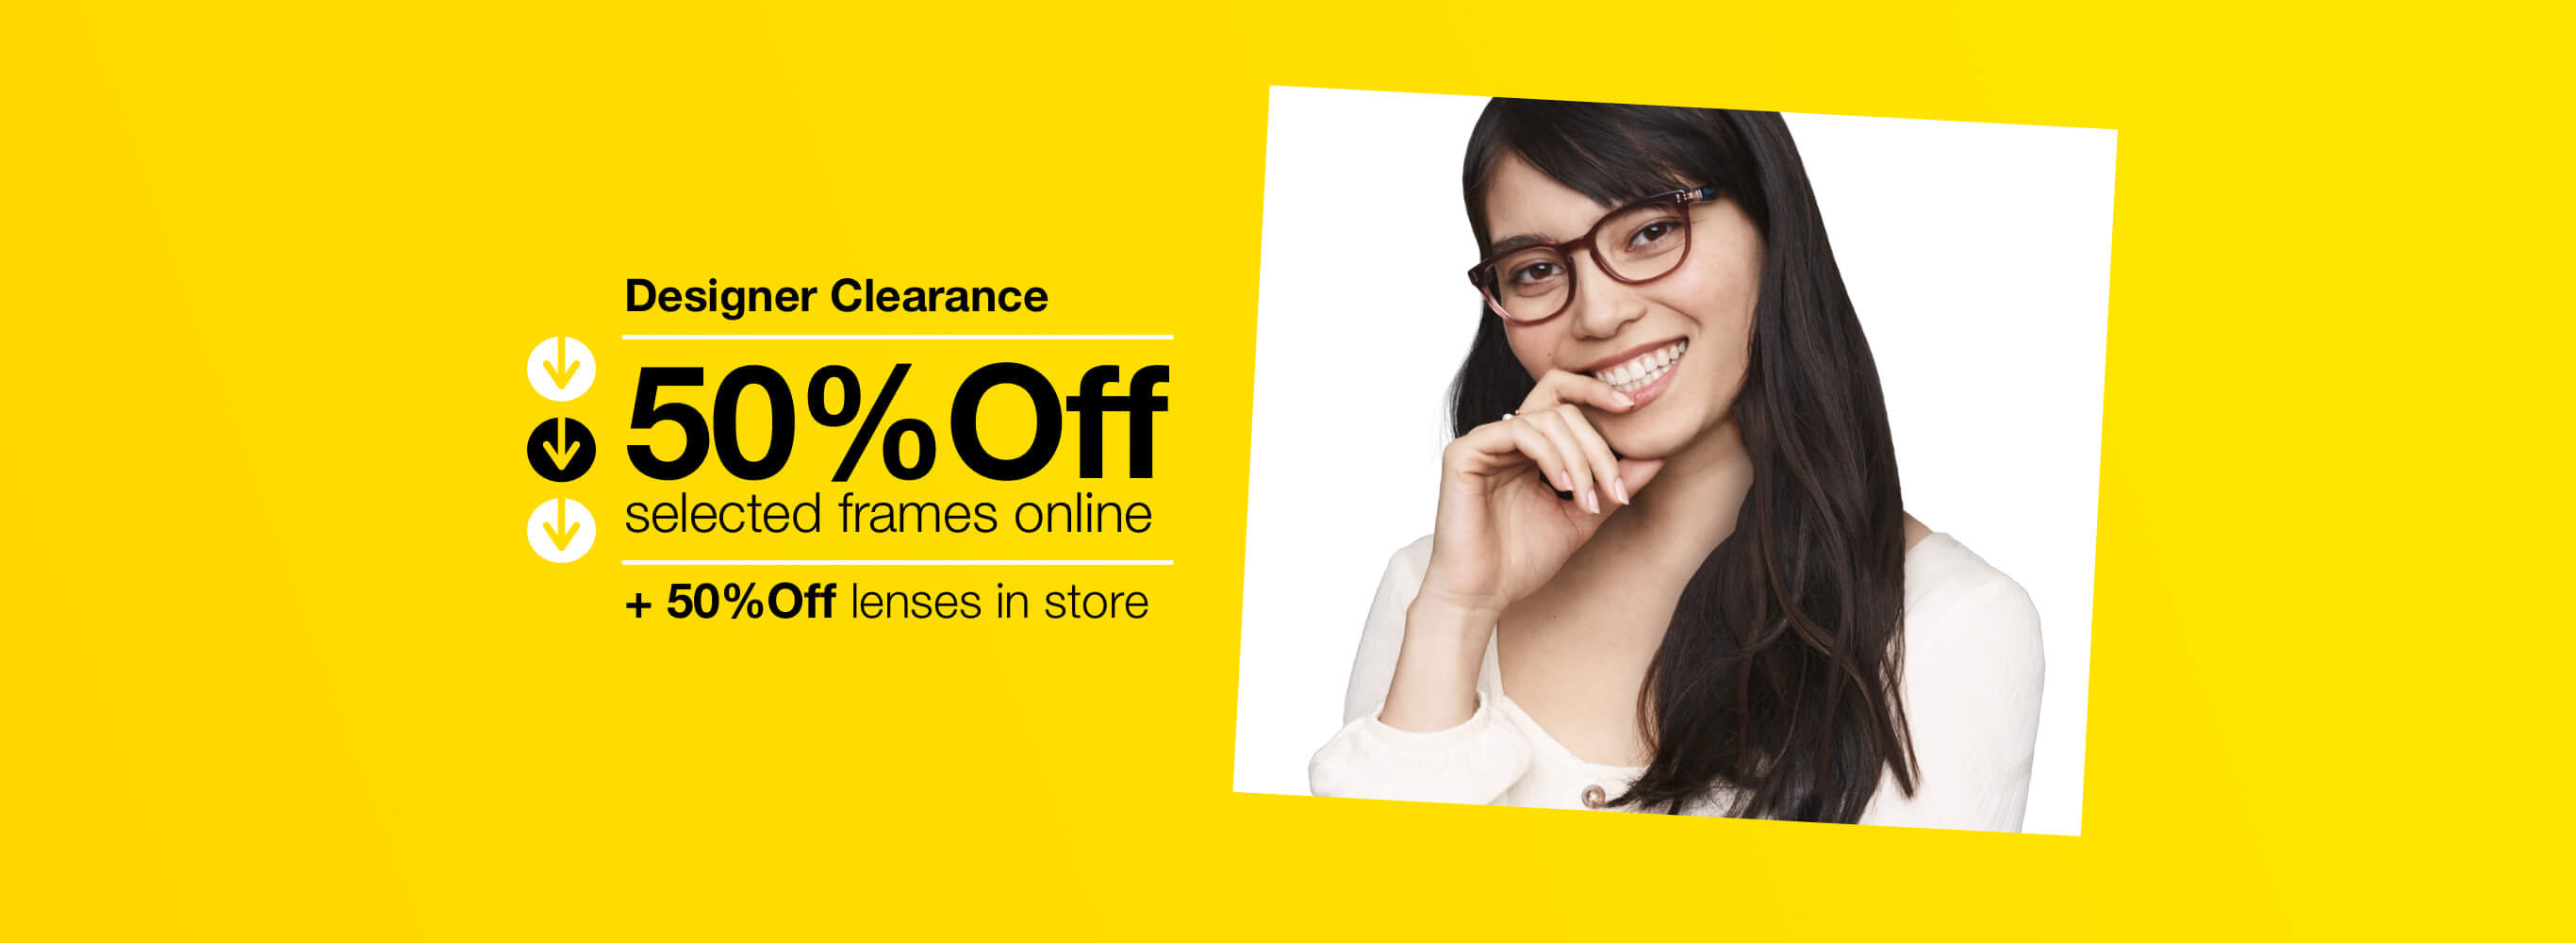 6b3349eceaeb Glasses, Sunglasses, Contacts & Eyewear Online | Target Optical